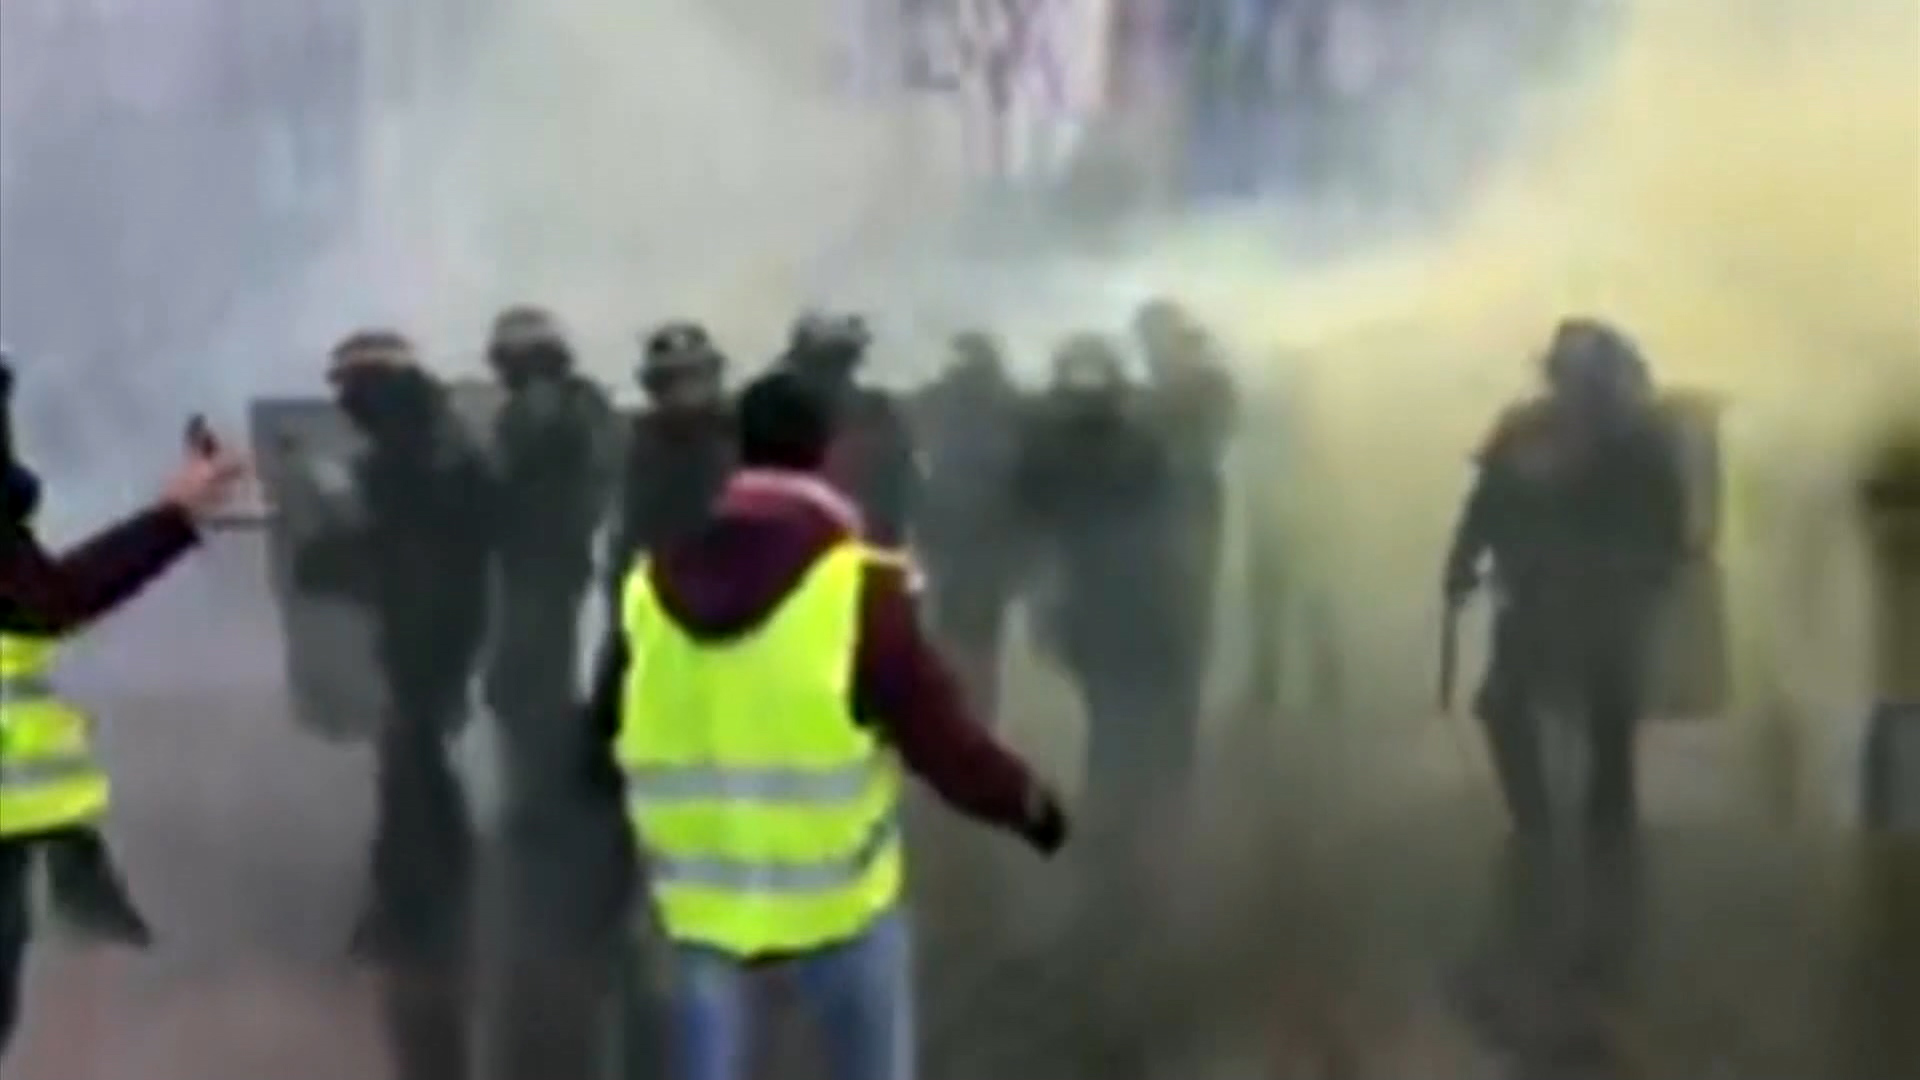 Protesters angry about rising taxes clash with police in Paris, 81 arrested